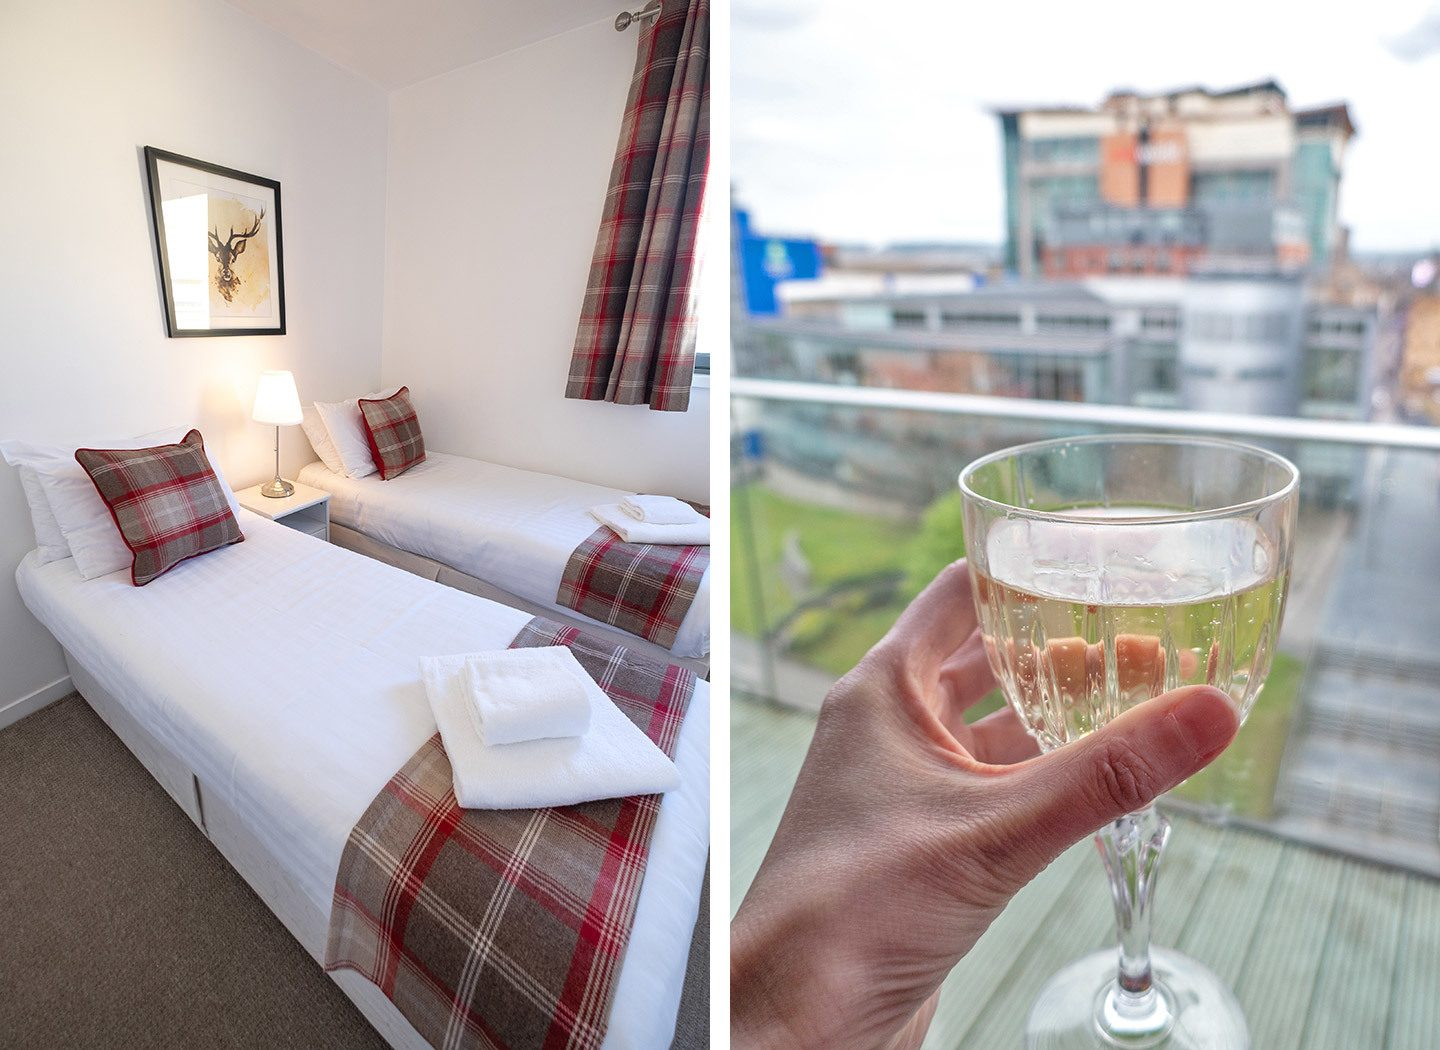 Matrix apartments in Glasgow – bedroom and balcony